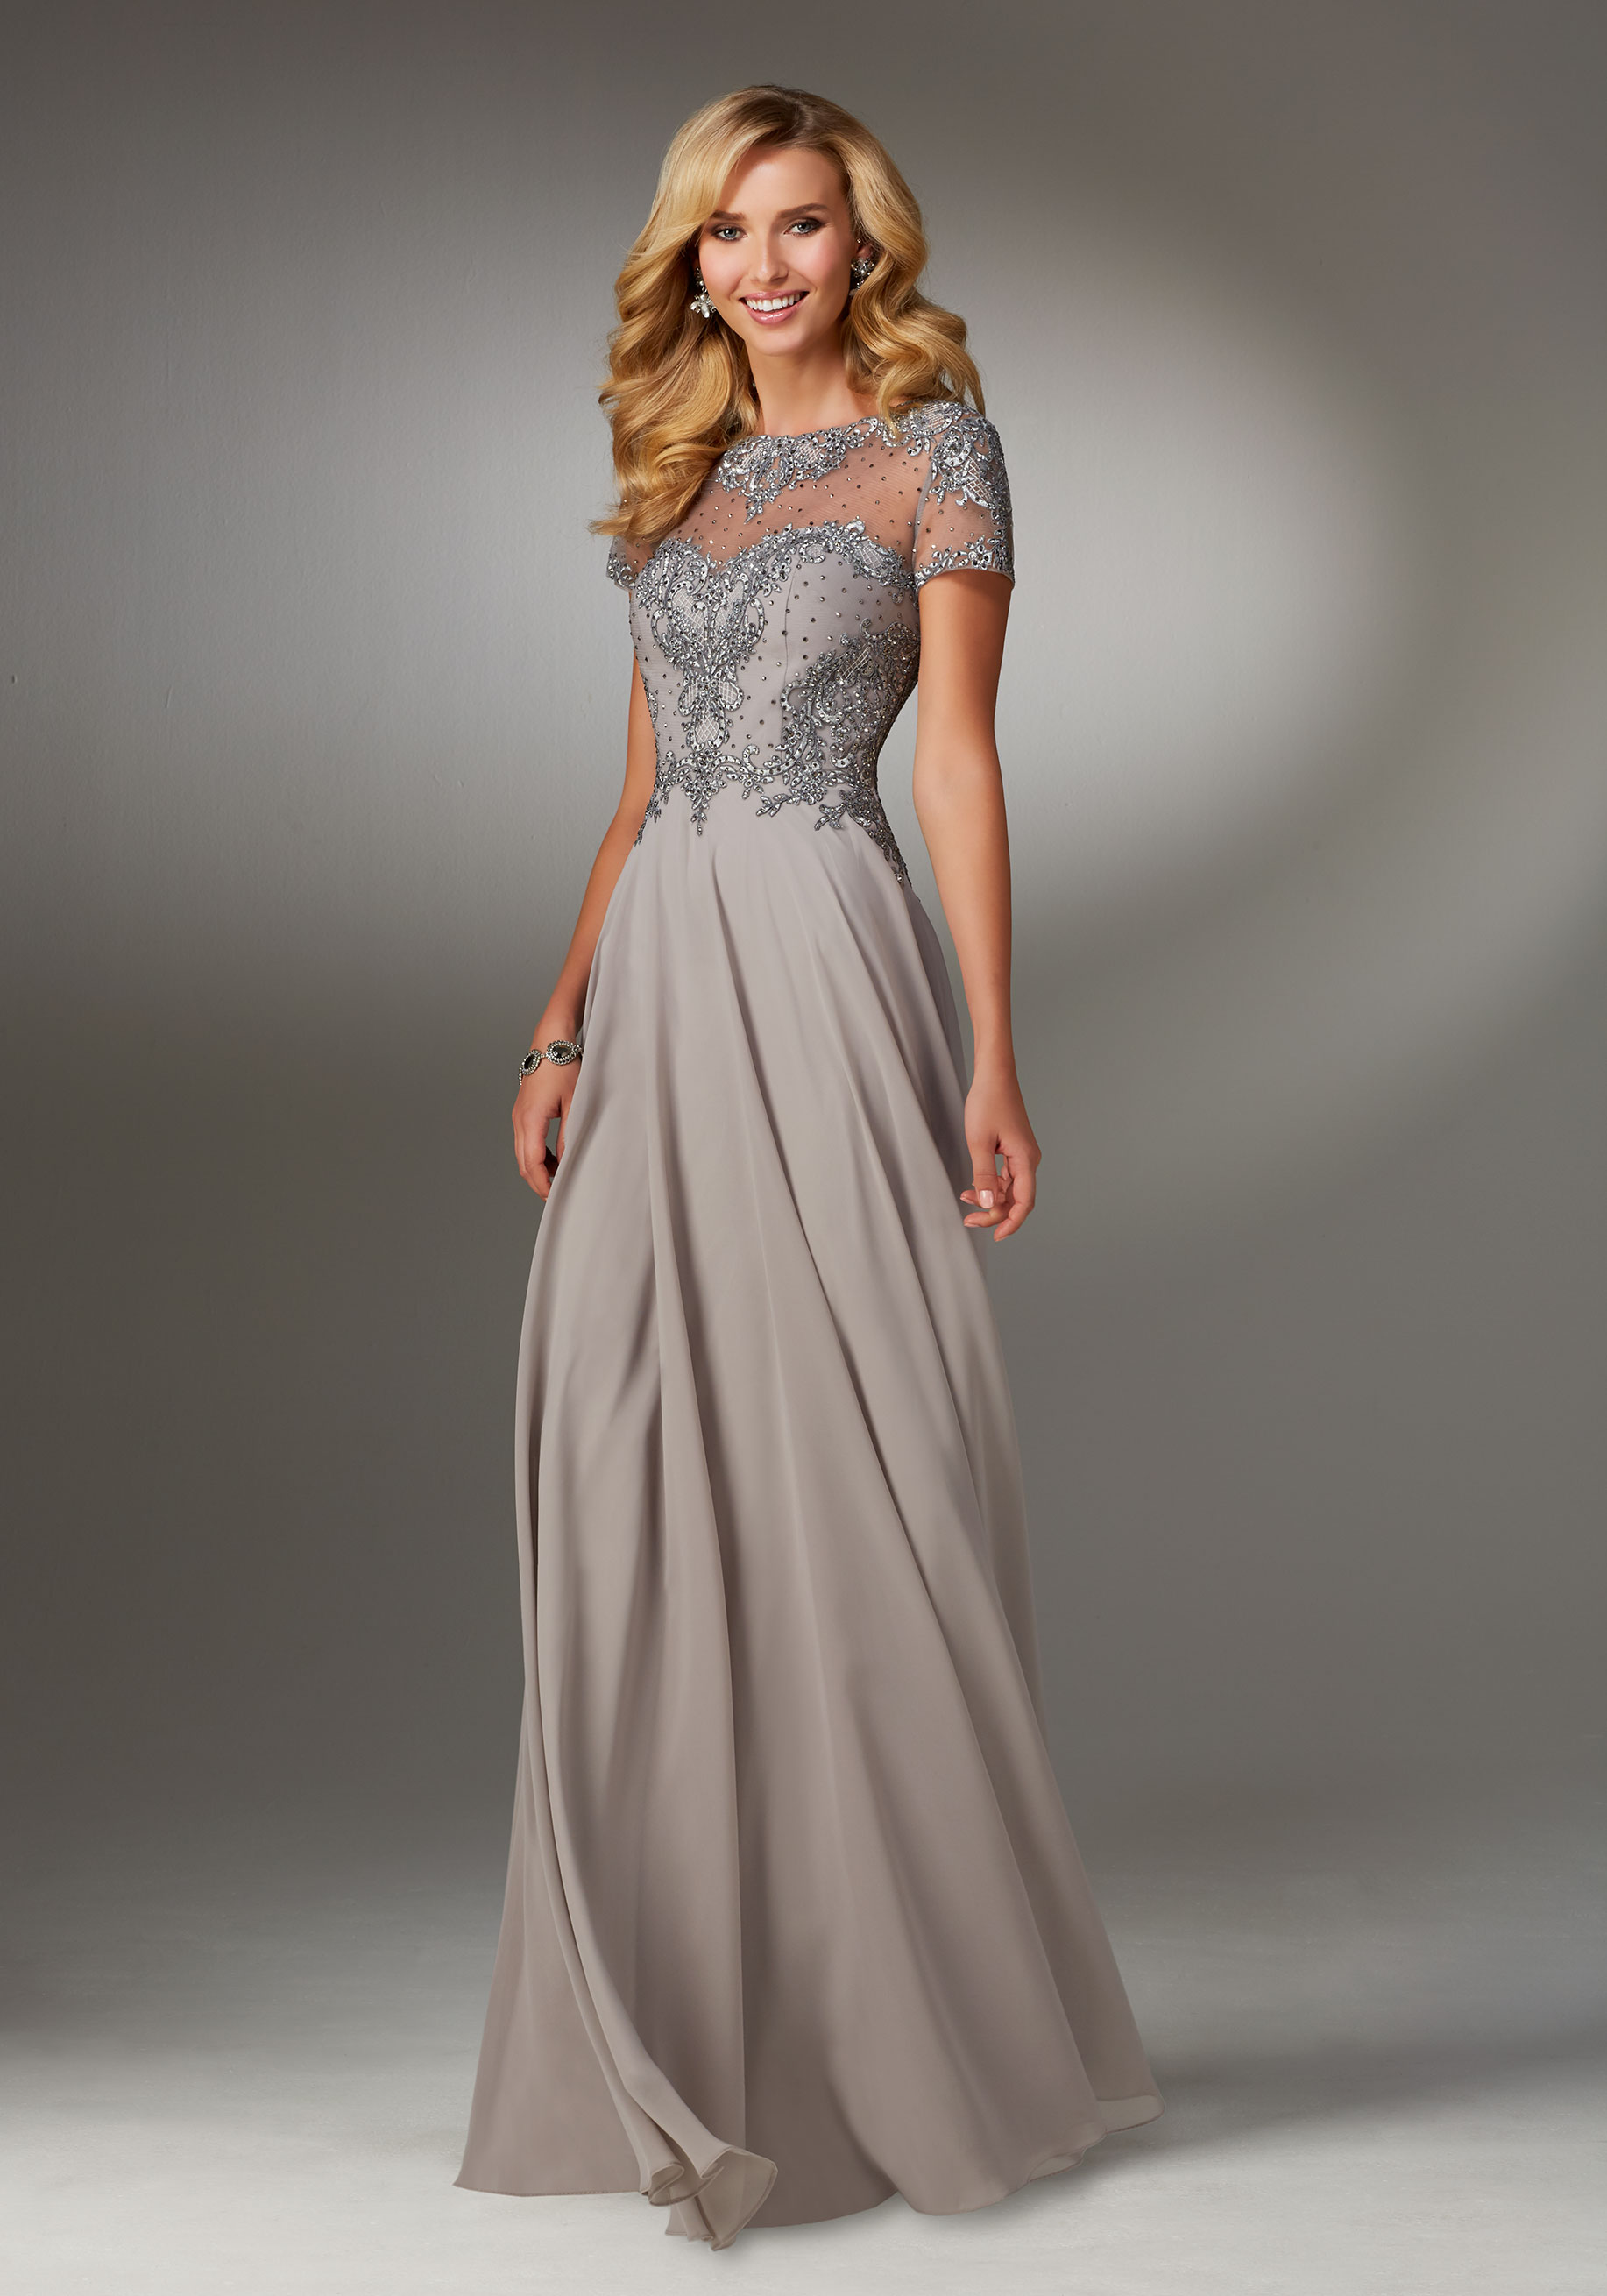 Special Occasion Dresses chiffon special occasion dress with beaded embroidery on bodice XUOEYQW